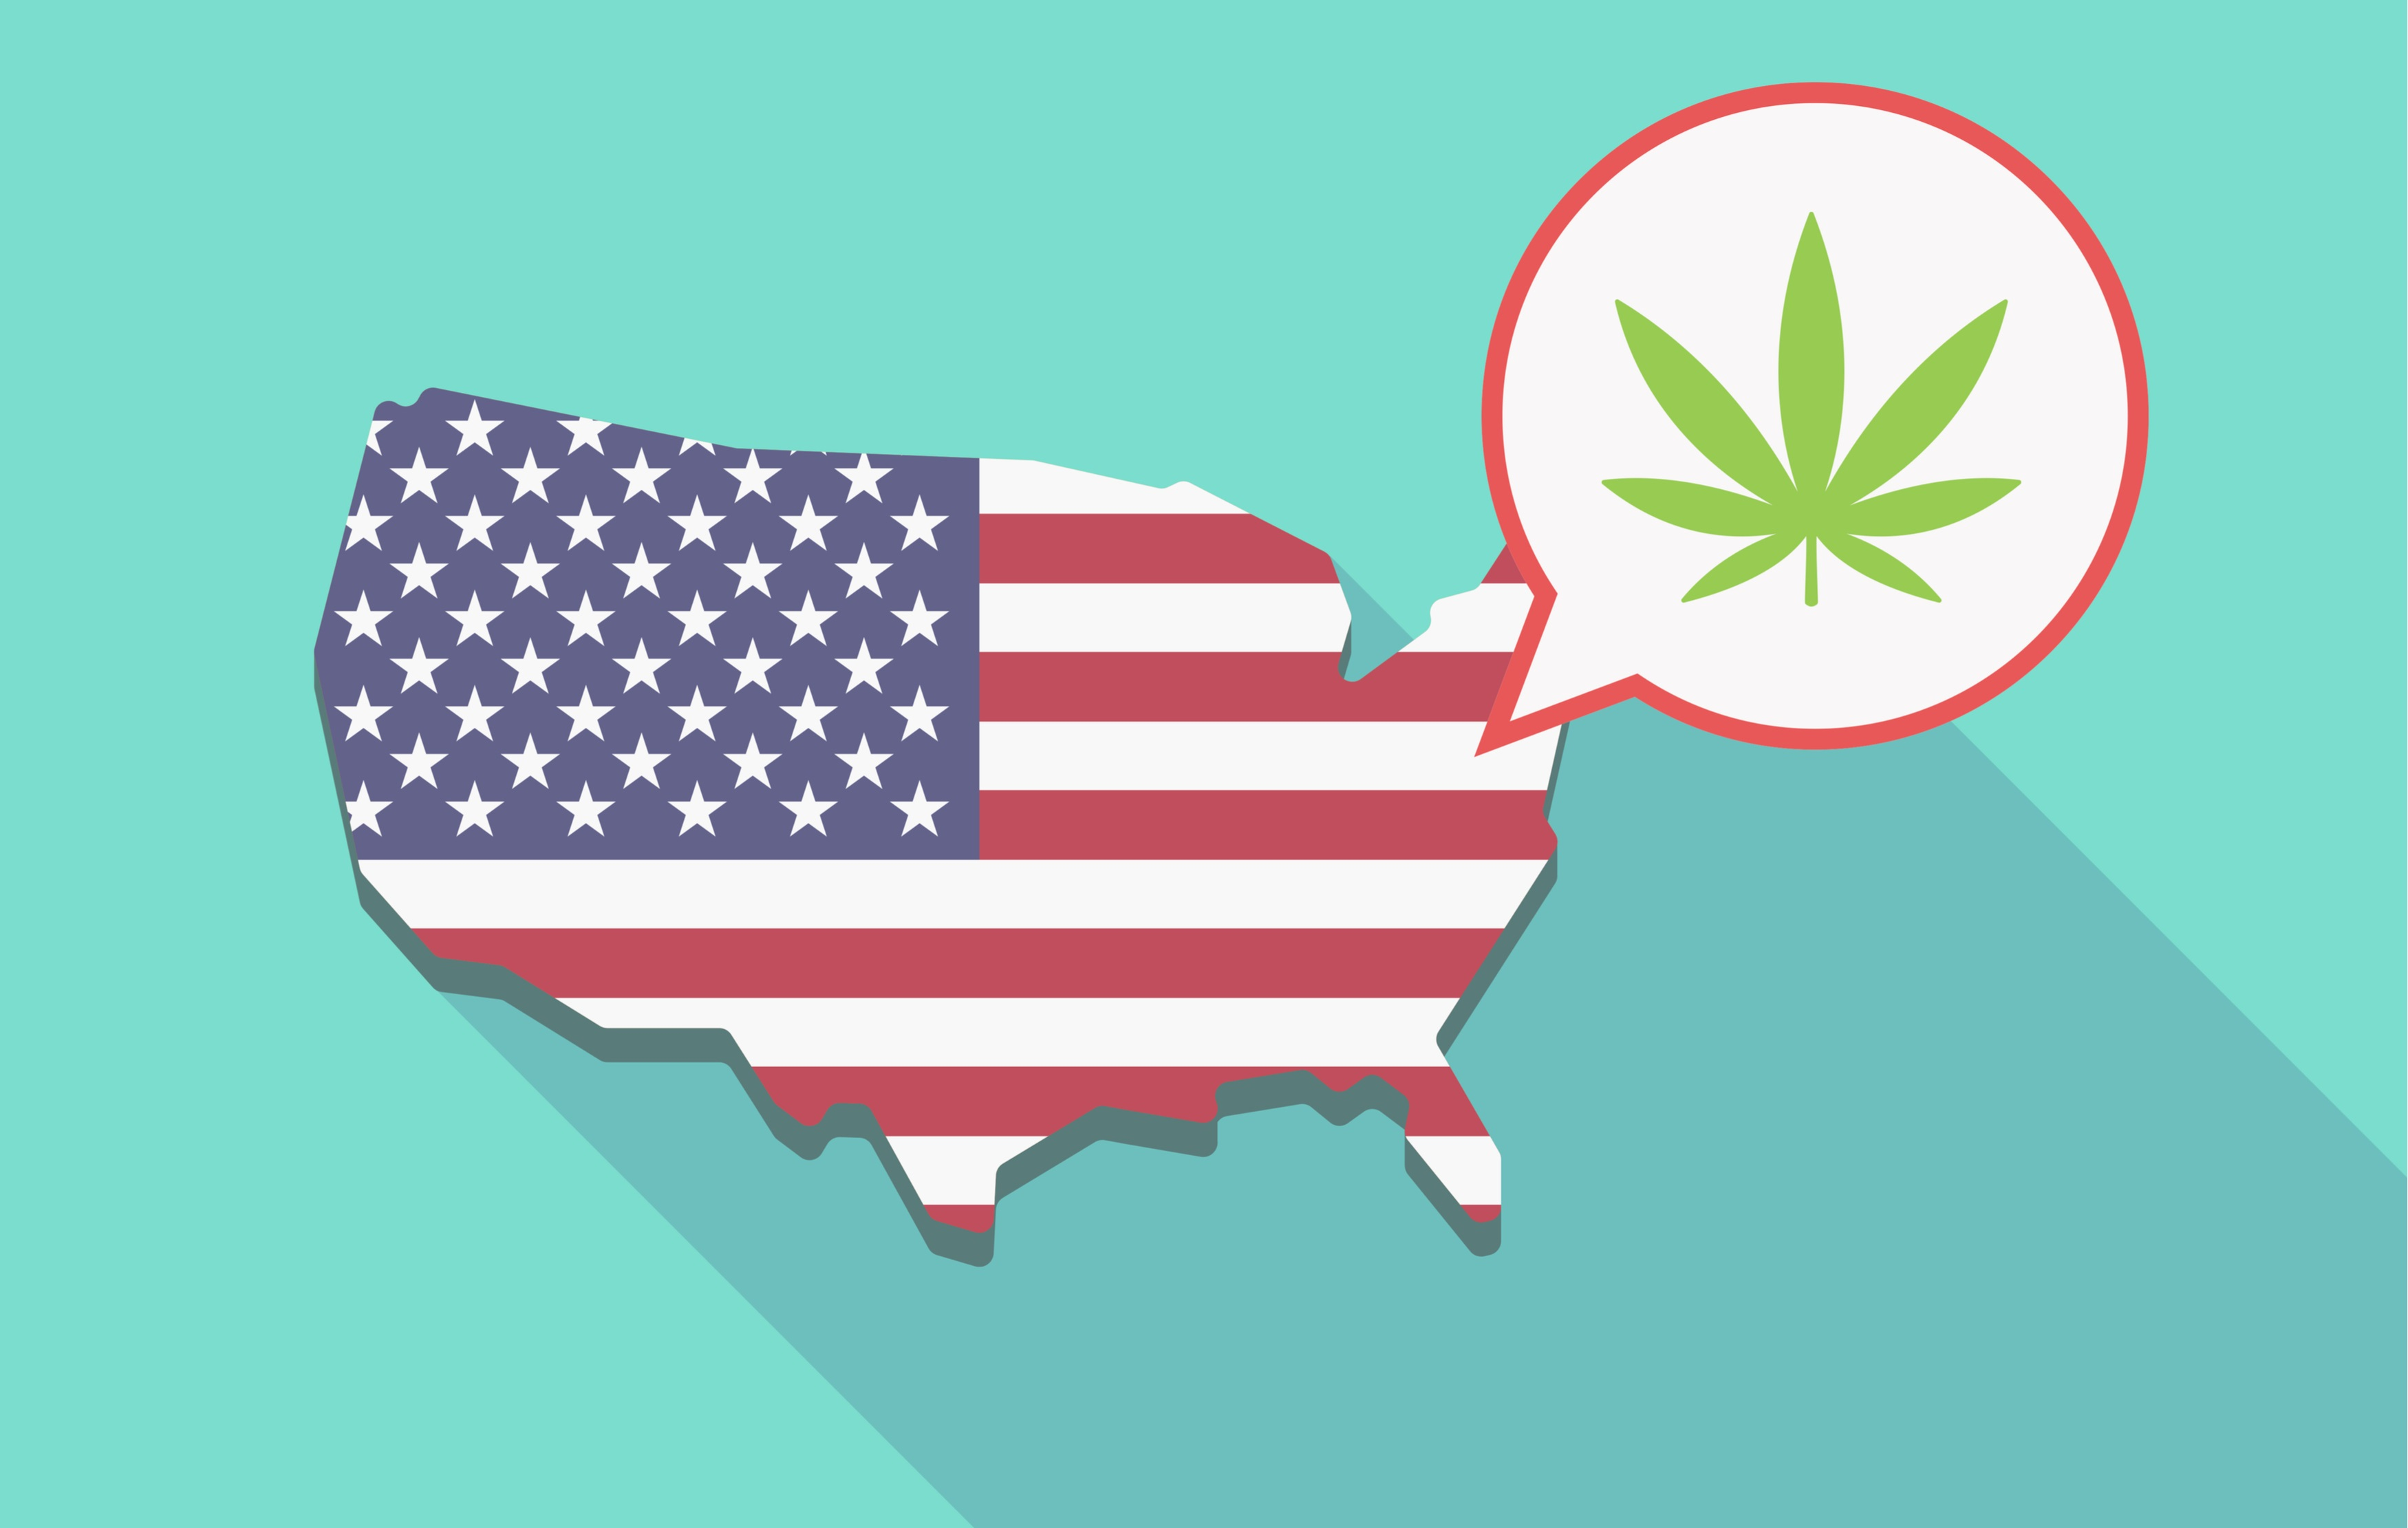 Cannabis United States